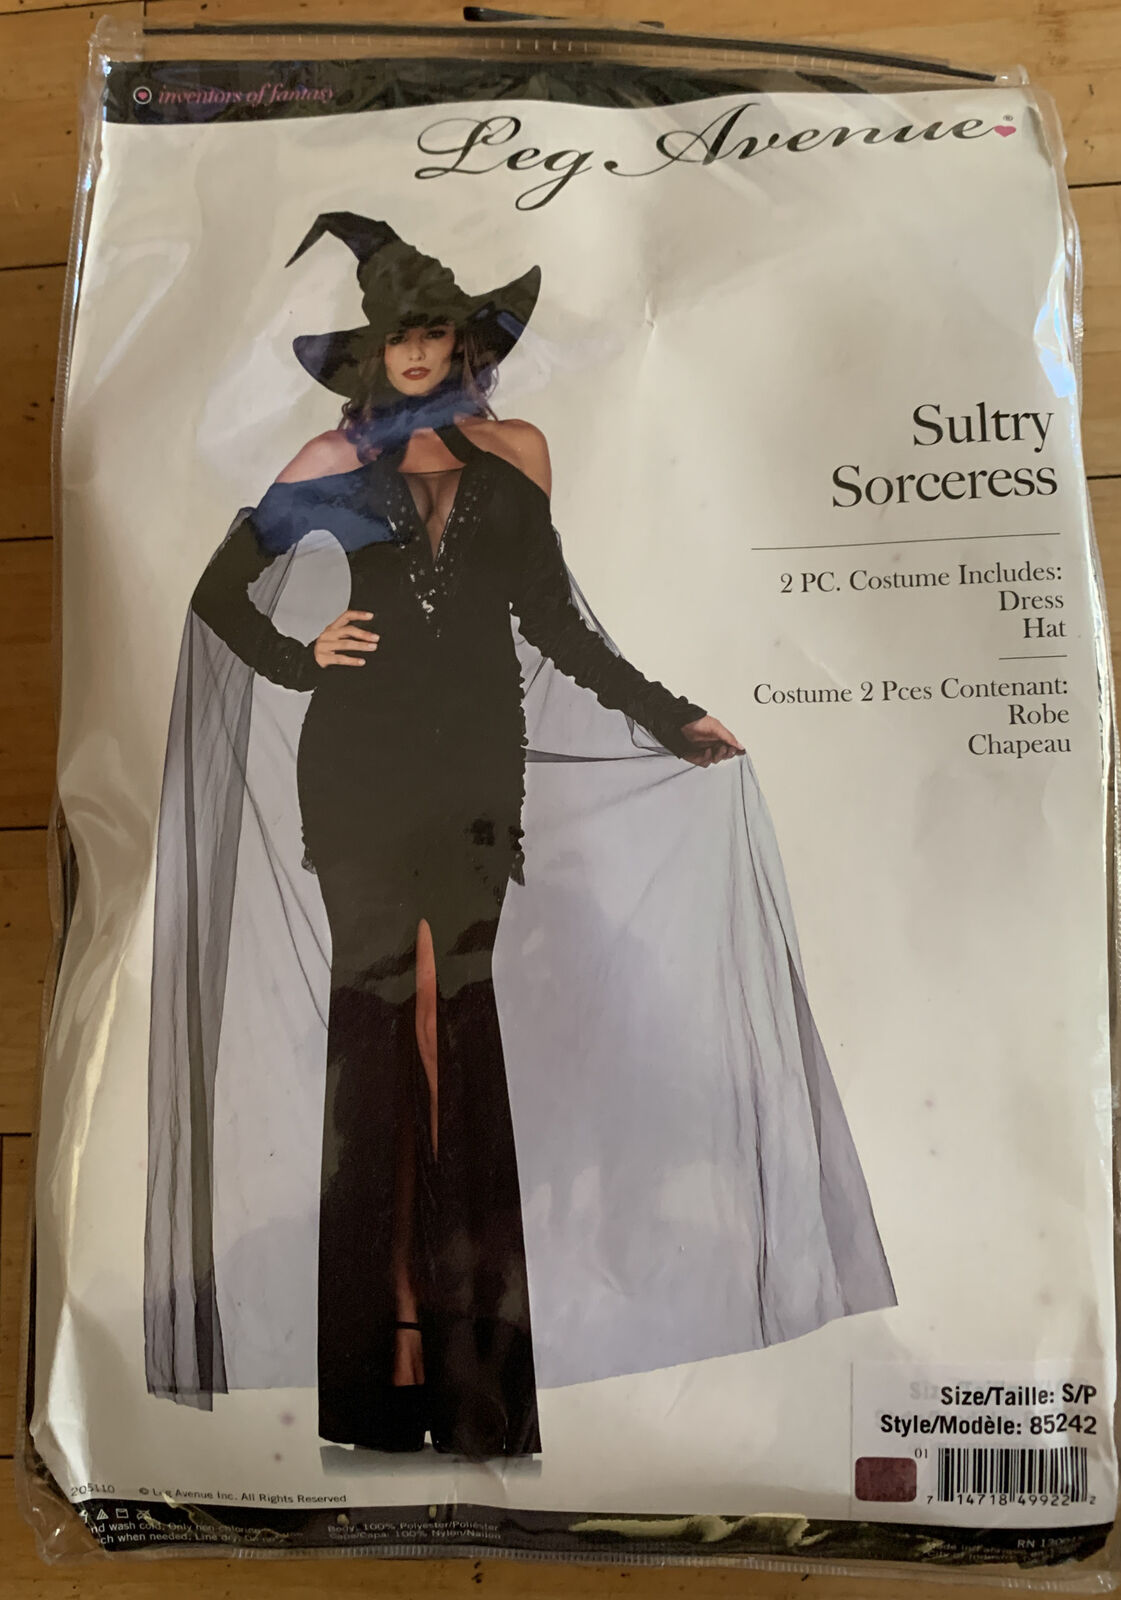 NEW 2 Pc Leg Avenue SULTRY SORCERESS Witch Costume Women's Sz Small Dress & Hat